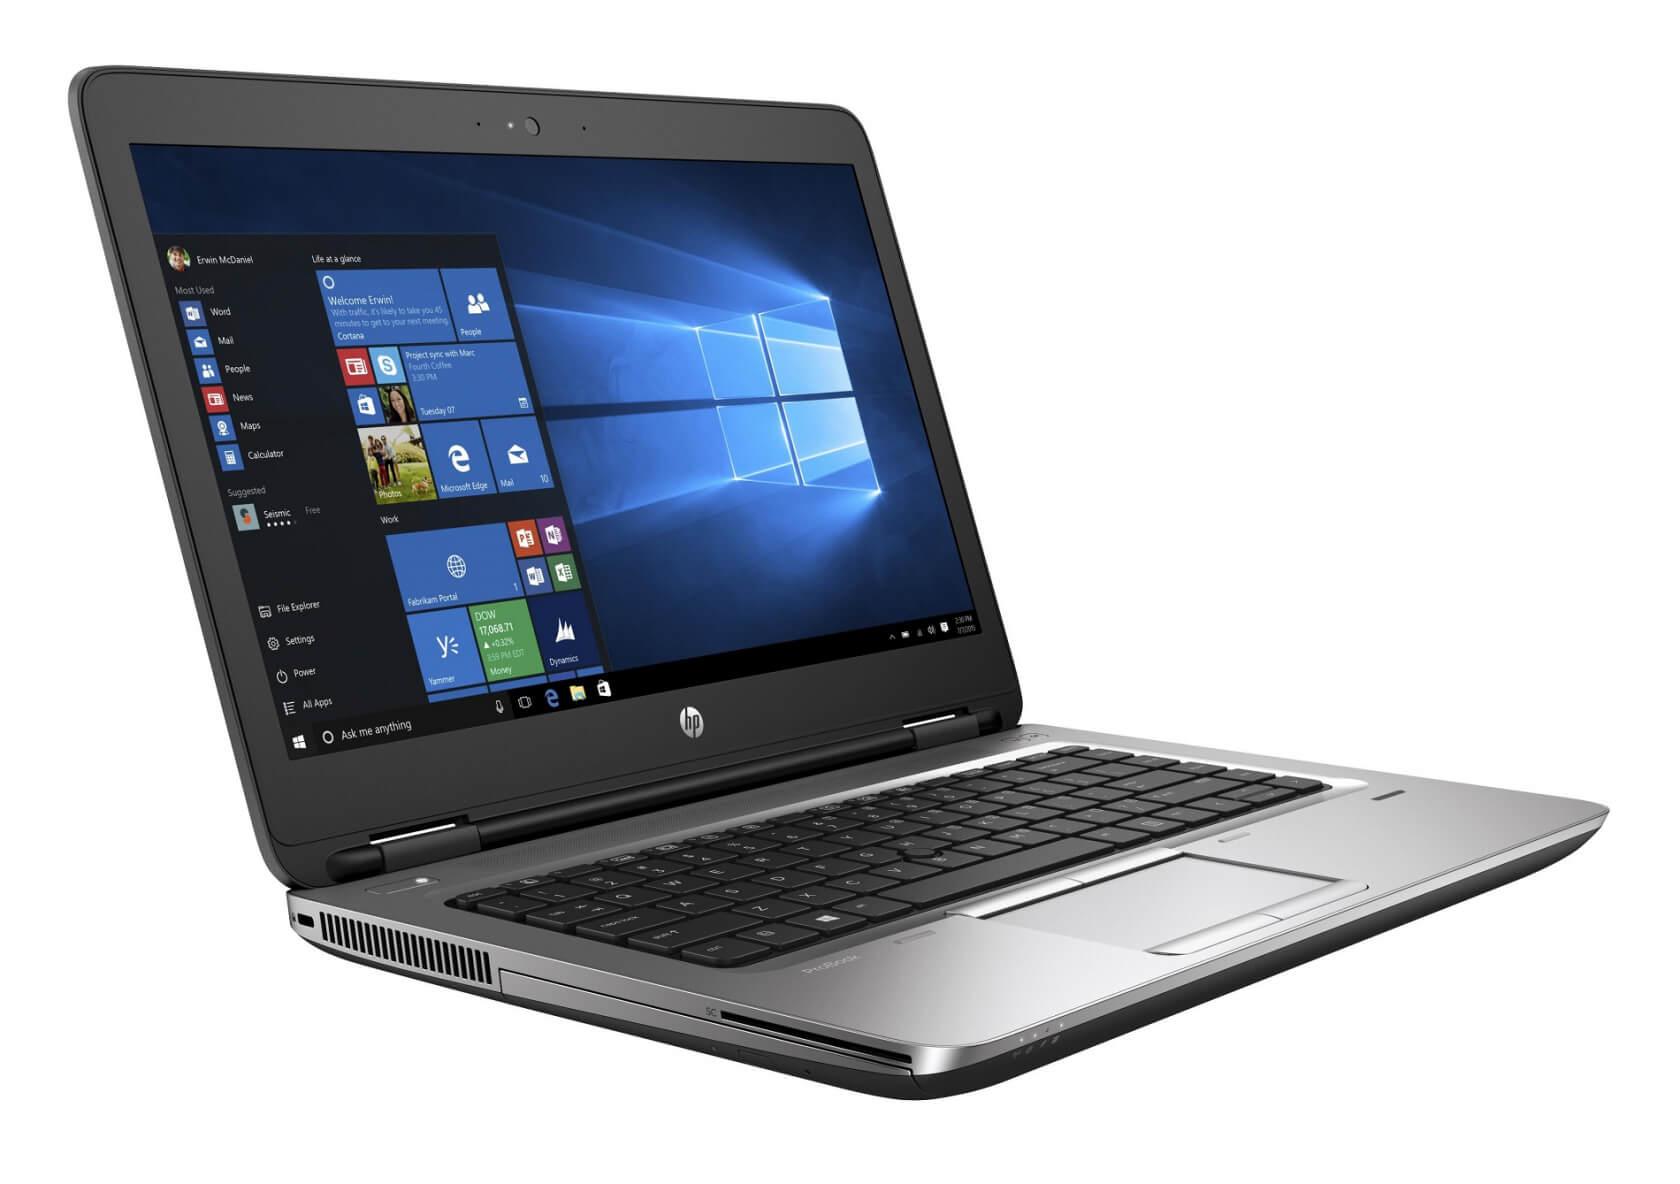 HP Recalls 50000 Lithium-Ion Laptop Batteries Over Fire Risk